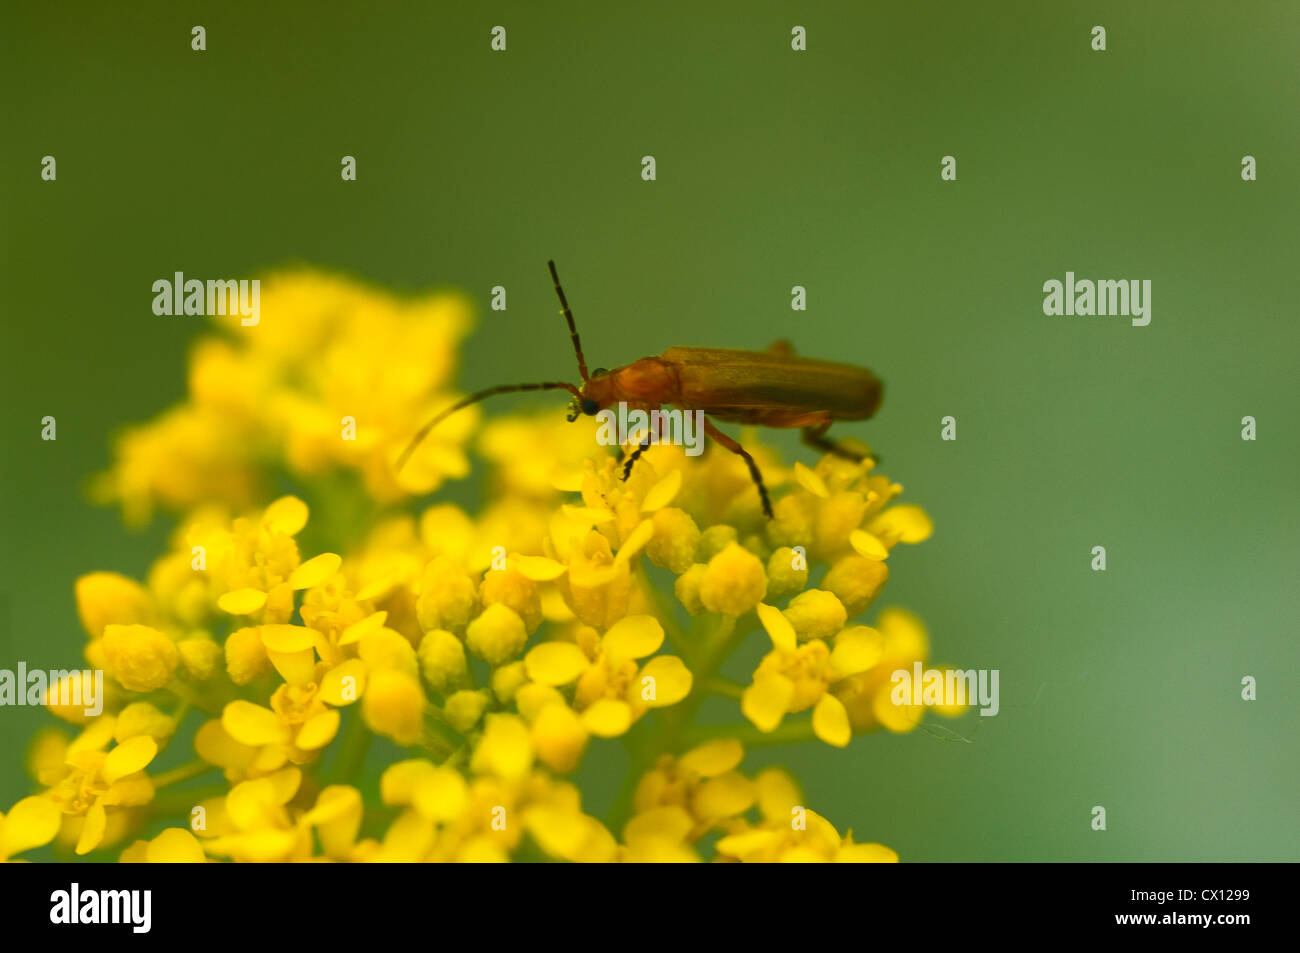 Common red soldier beetle (Rhagonycha fulva) on yellow blooms - Stock Image